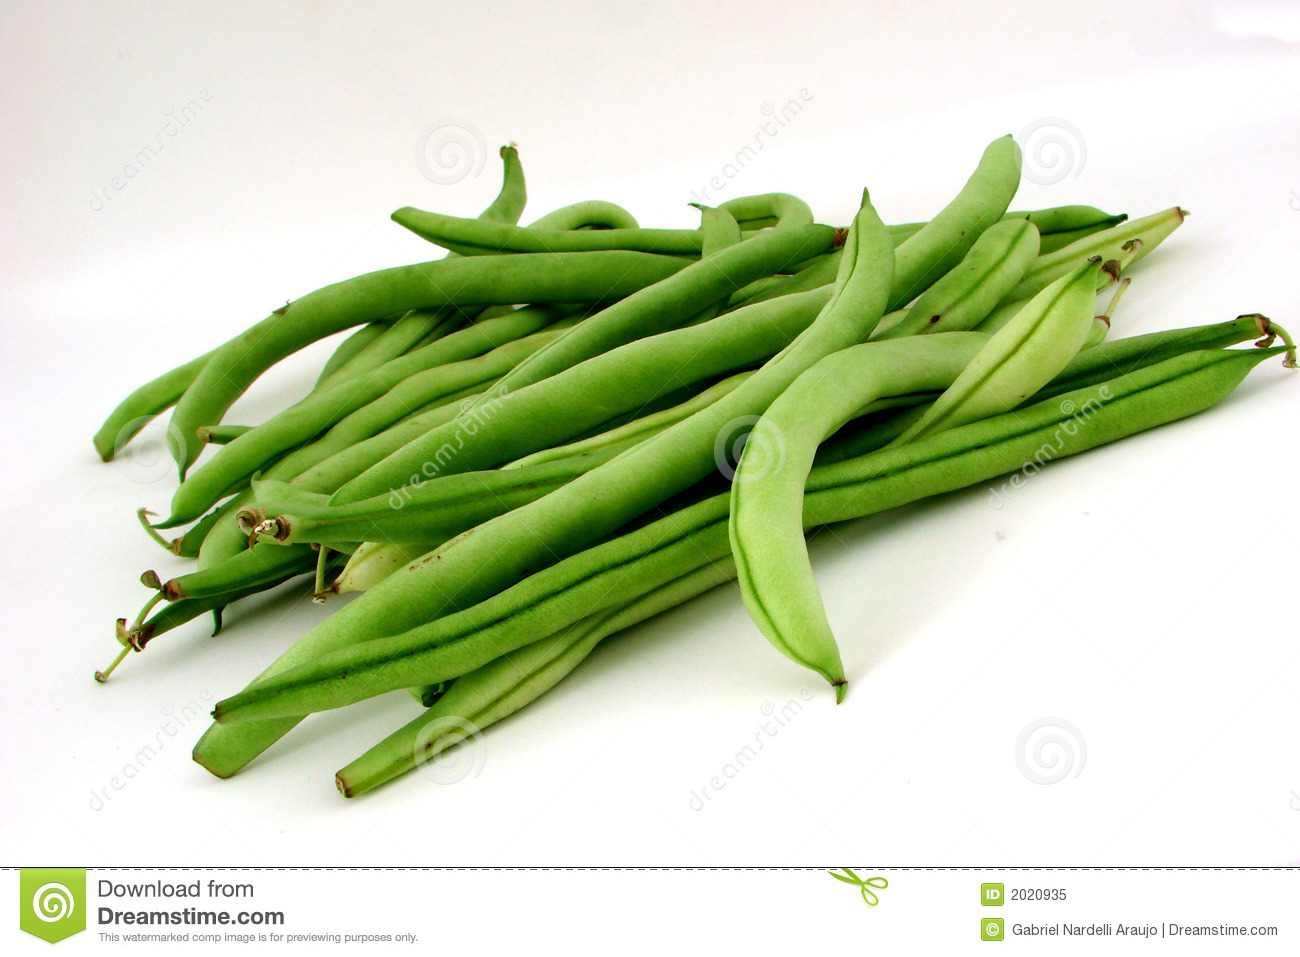 how to cook canned french cut green beans